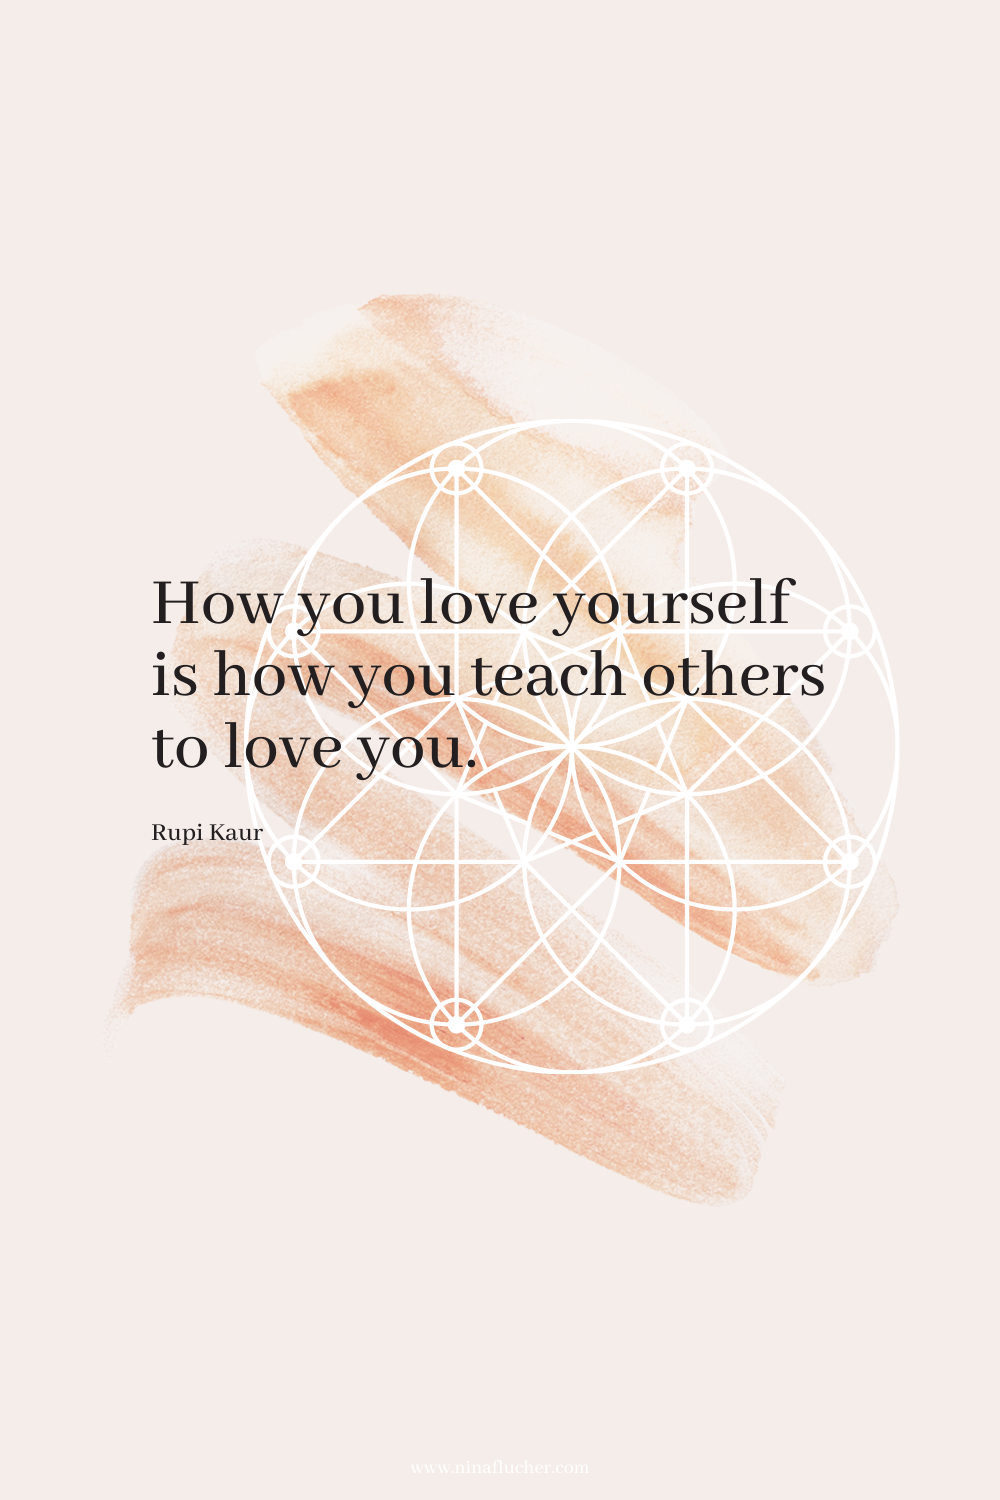 Zitate Jänner 2021 How you love yourself is how you teach others to love you.